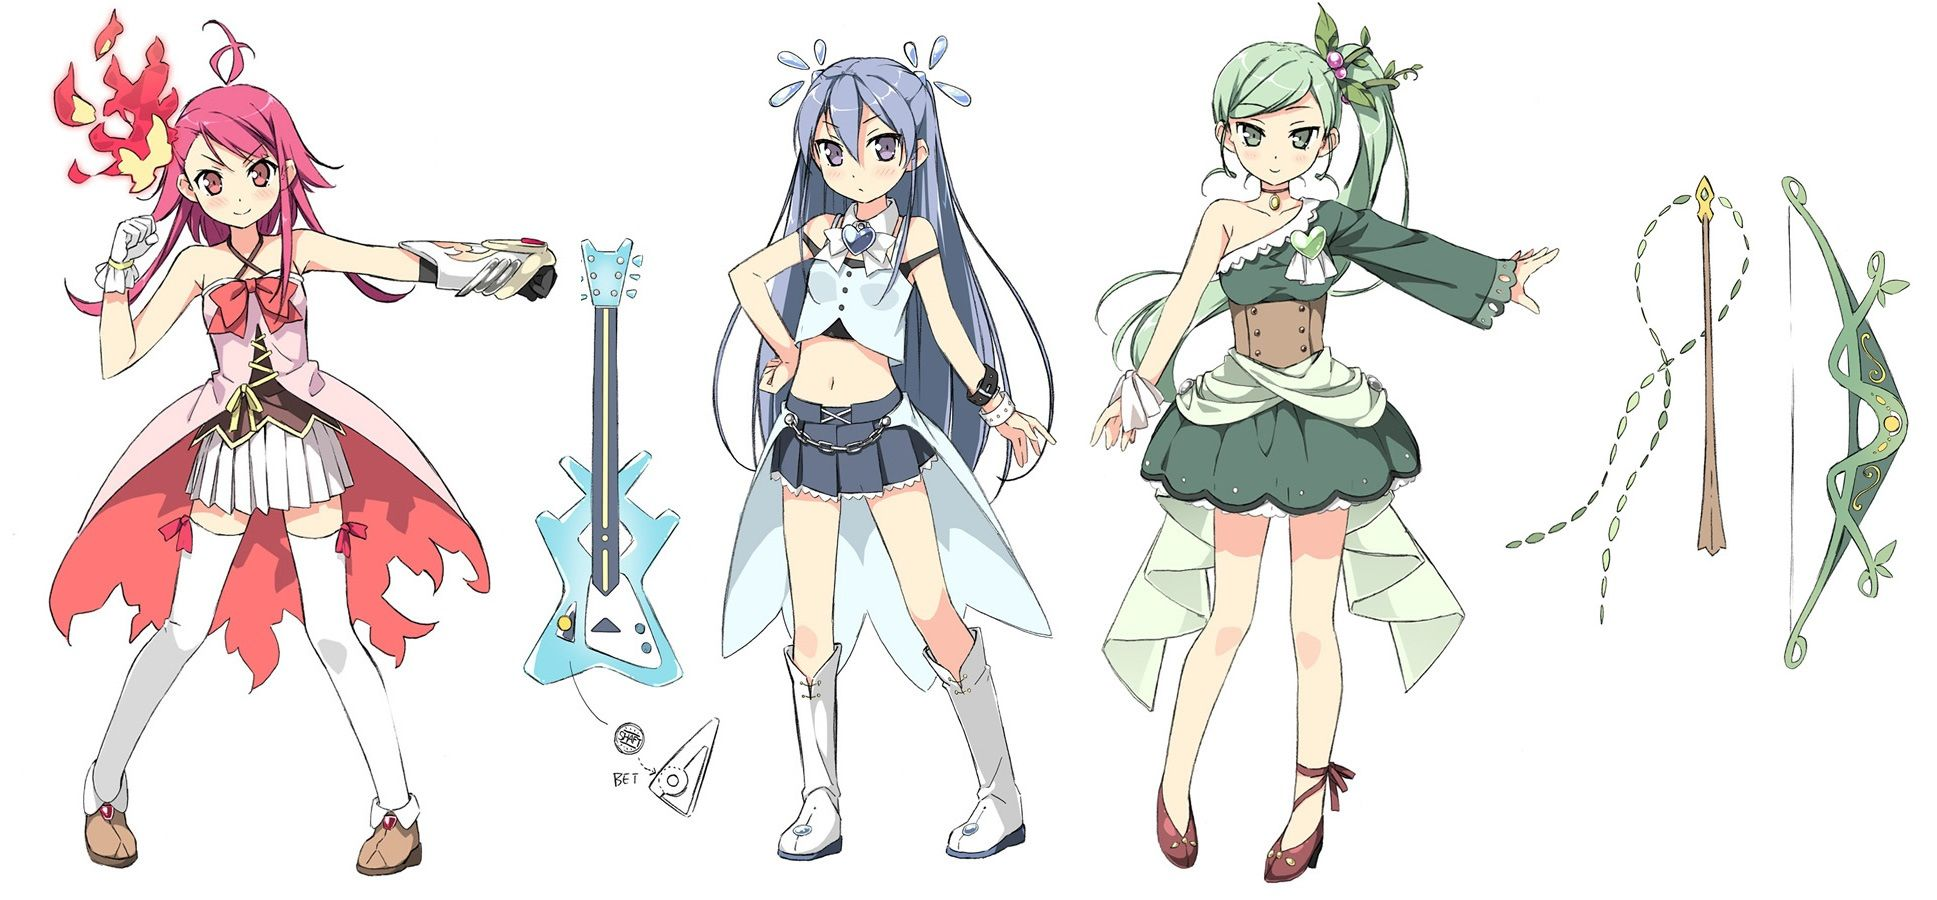 Anime Boy Character Design : Anime design cute girls character designs